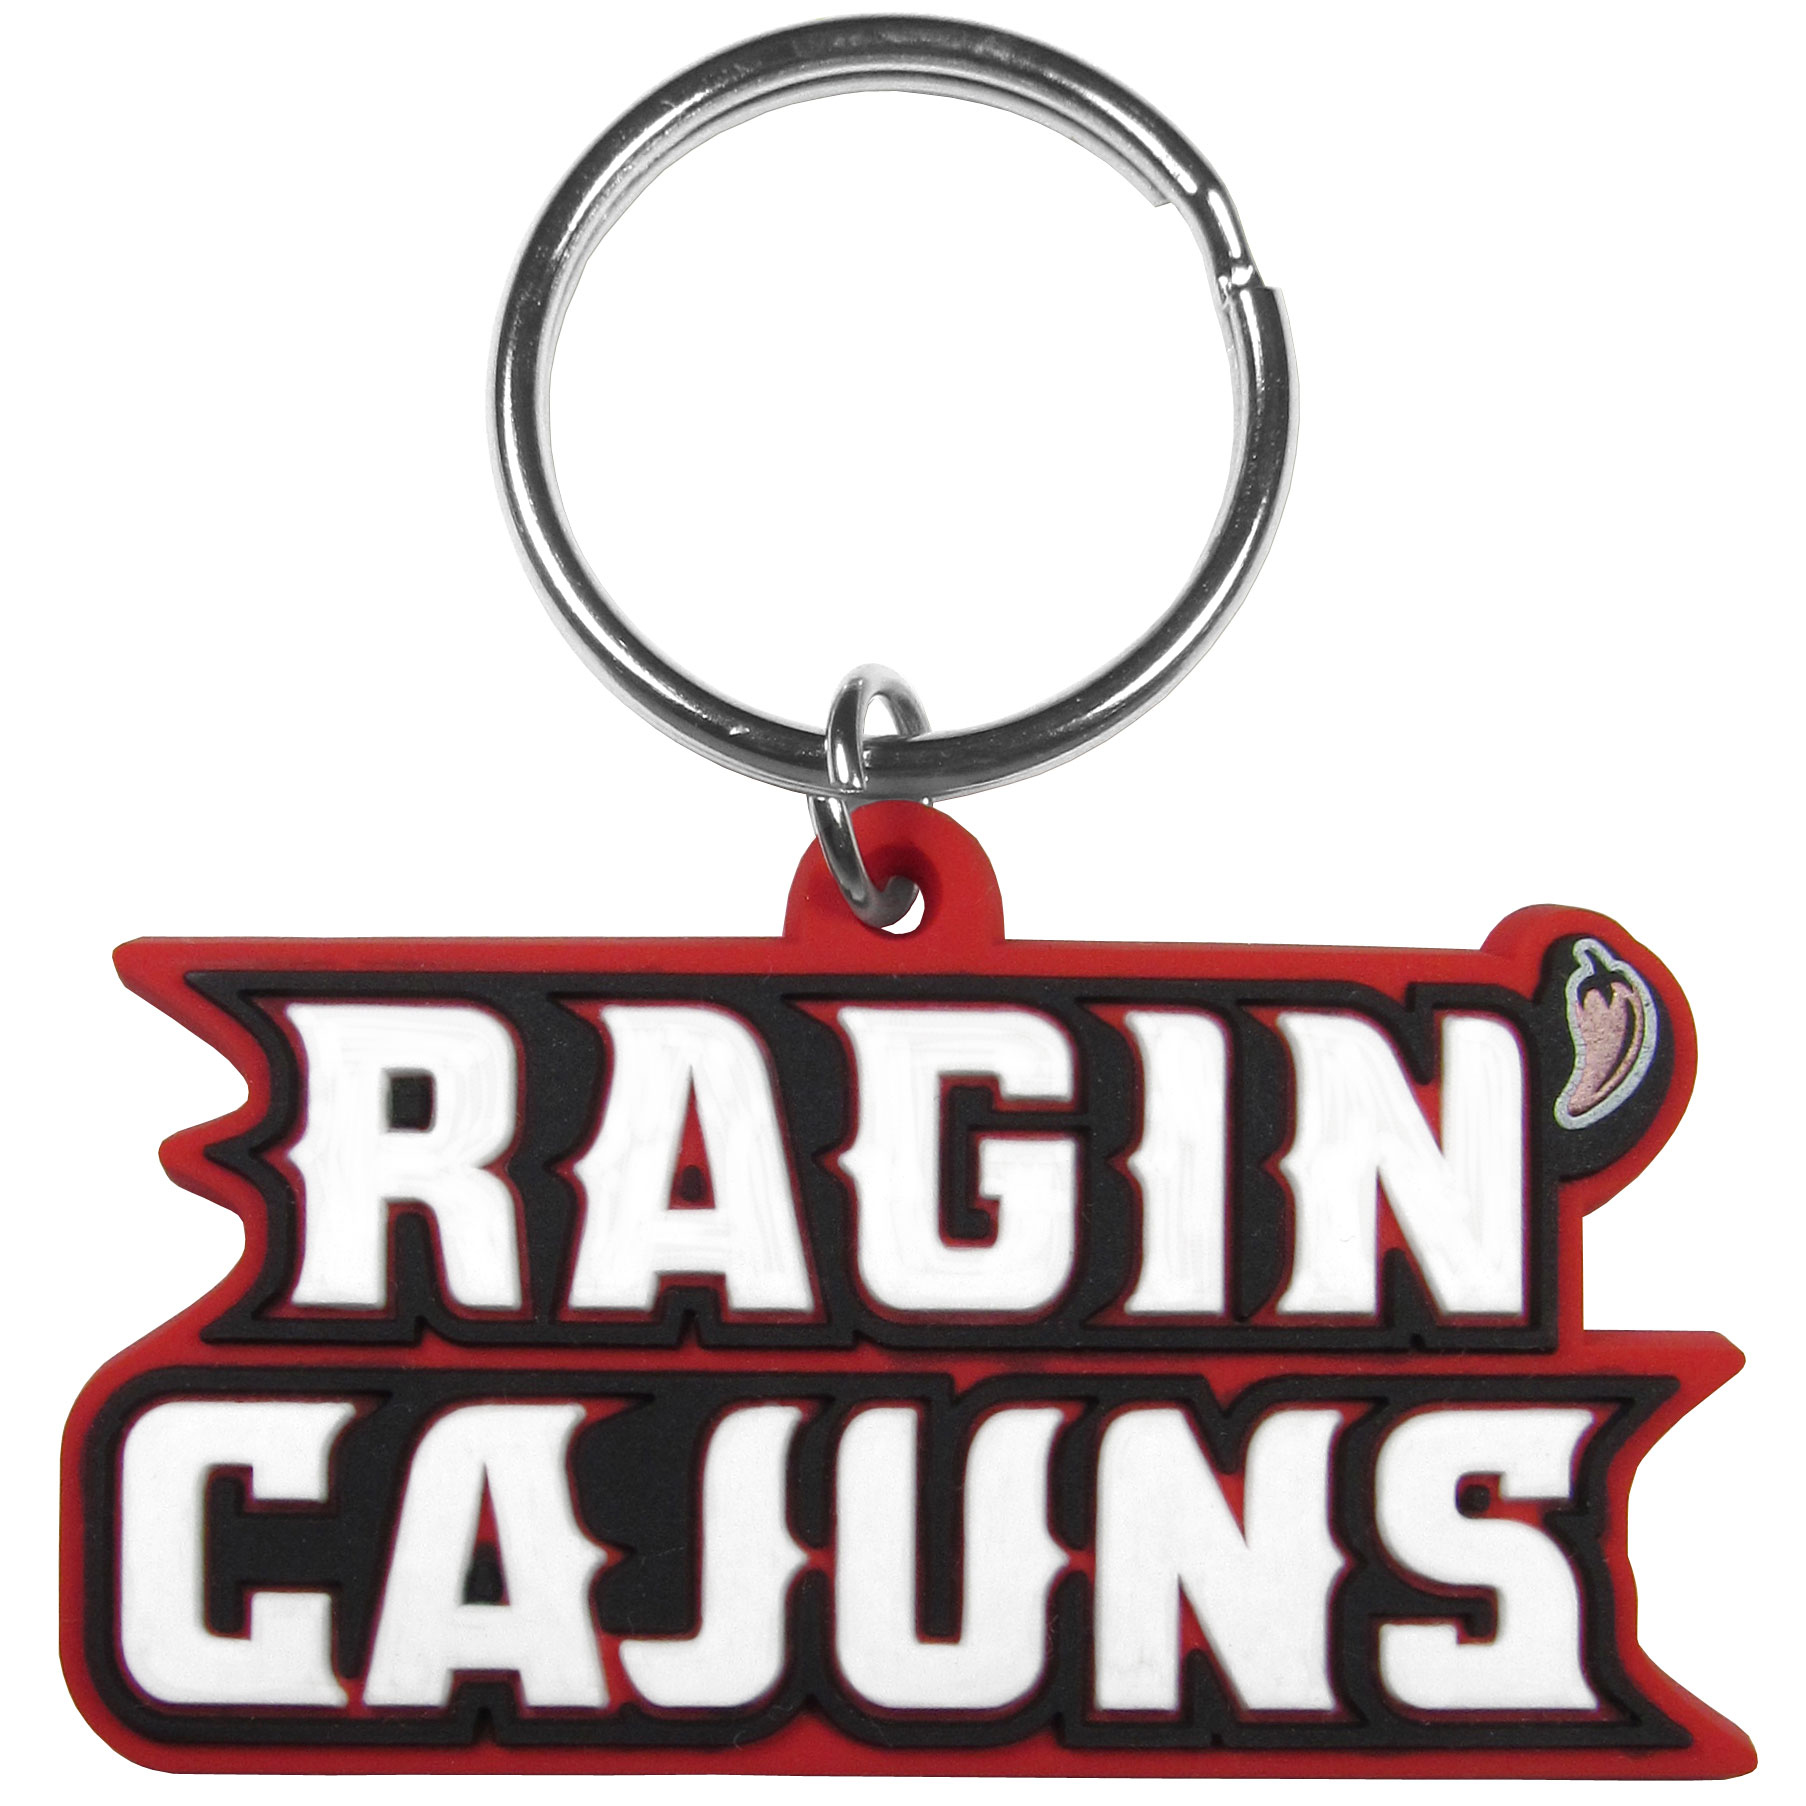 Louisiana Layfayette Ragin' Cajuns Flex Key Chain - Our fun, flexible Louisiana Layfayette Ragin' Cajuns key chains are made of a rubbery material that is layered to create a bright, textured logo.